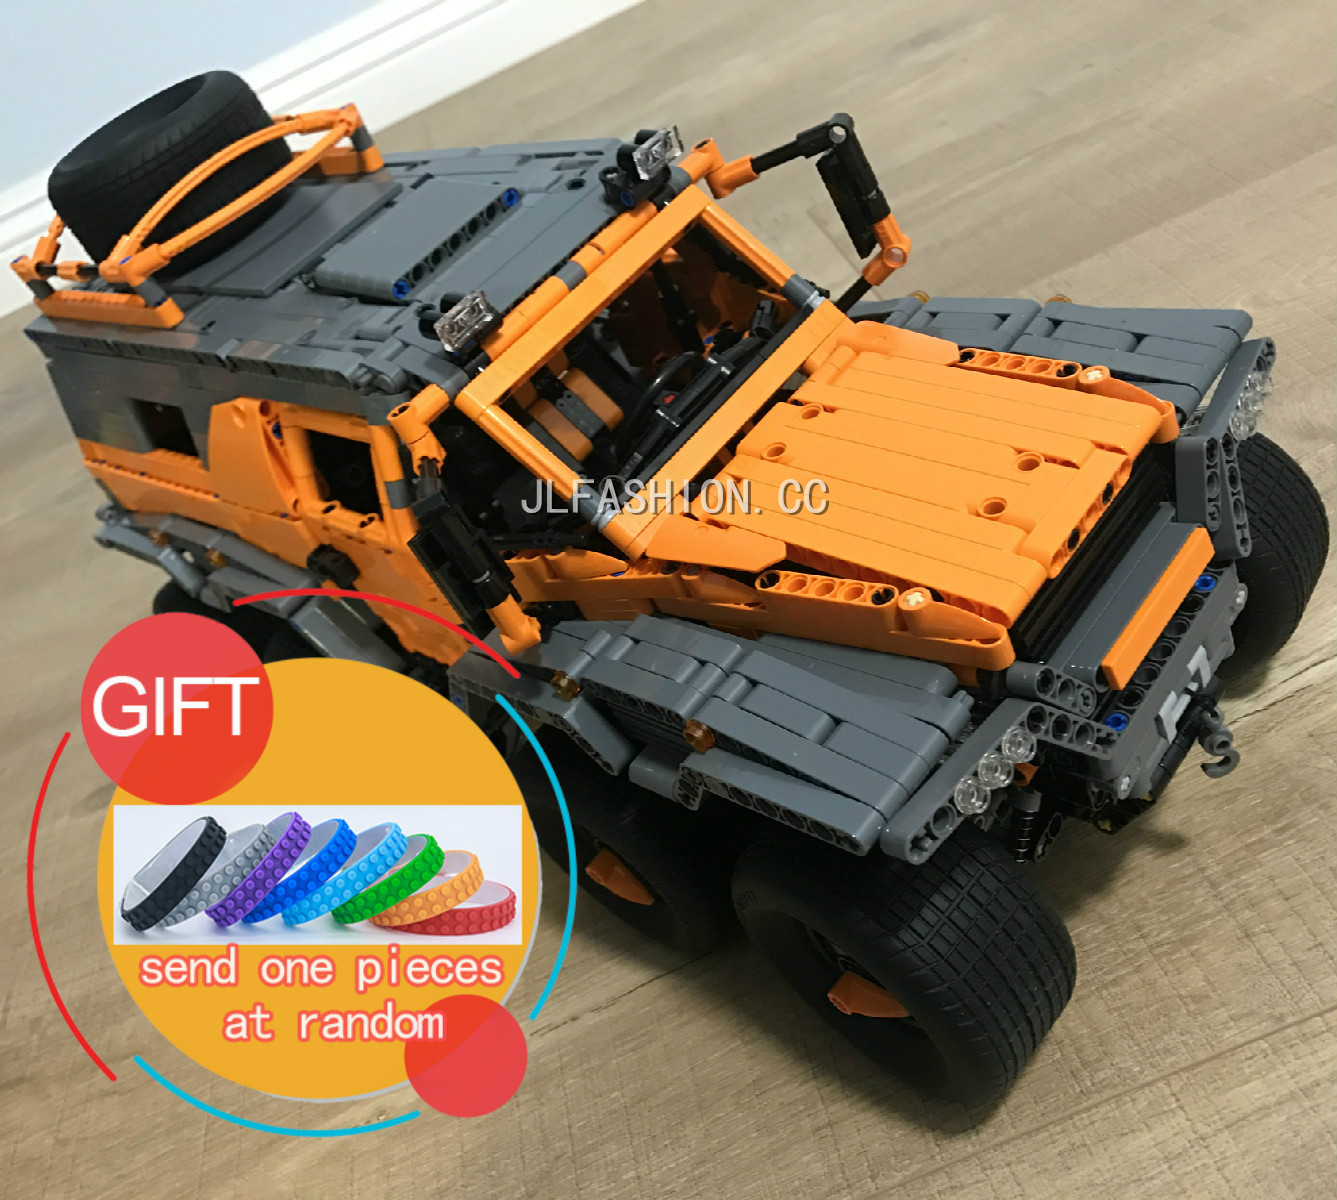 23011B 2816pcs Technical Series Off-road vehicle Model Building kits Blocks Compatible with 5360 boy brithday gifts toys lepin new lepin 23011 technic series 2816pcs off road vehicle model building blocks bricks kits compatible 5360 boy brithday gifts